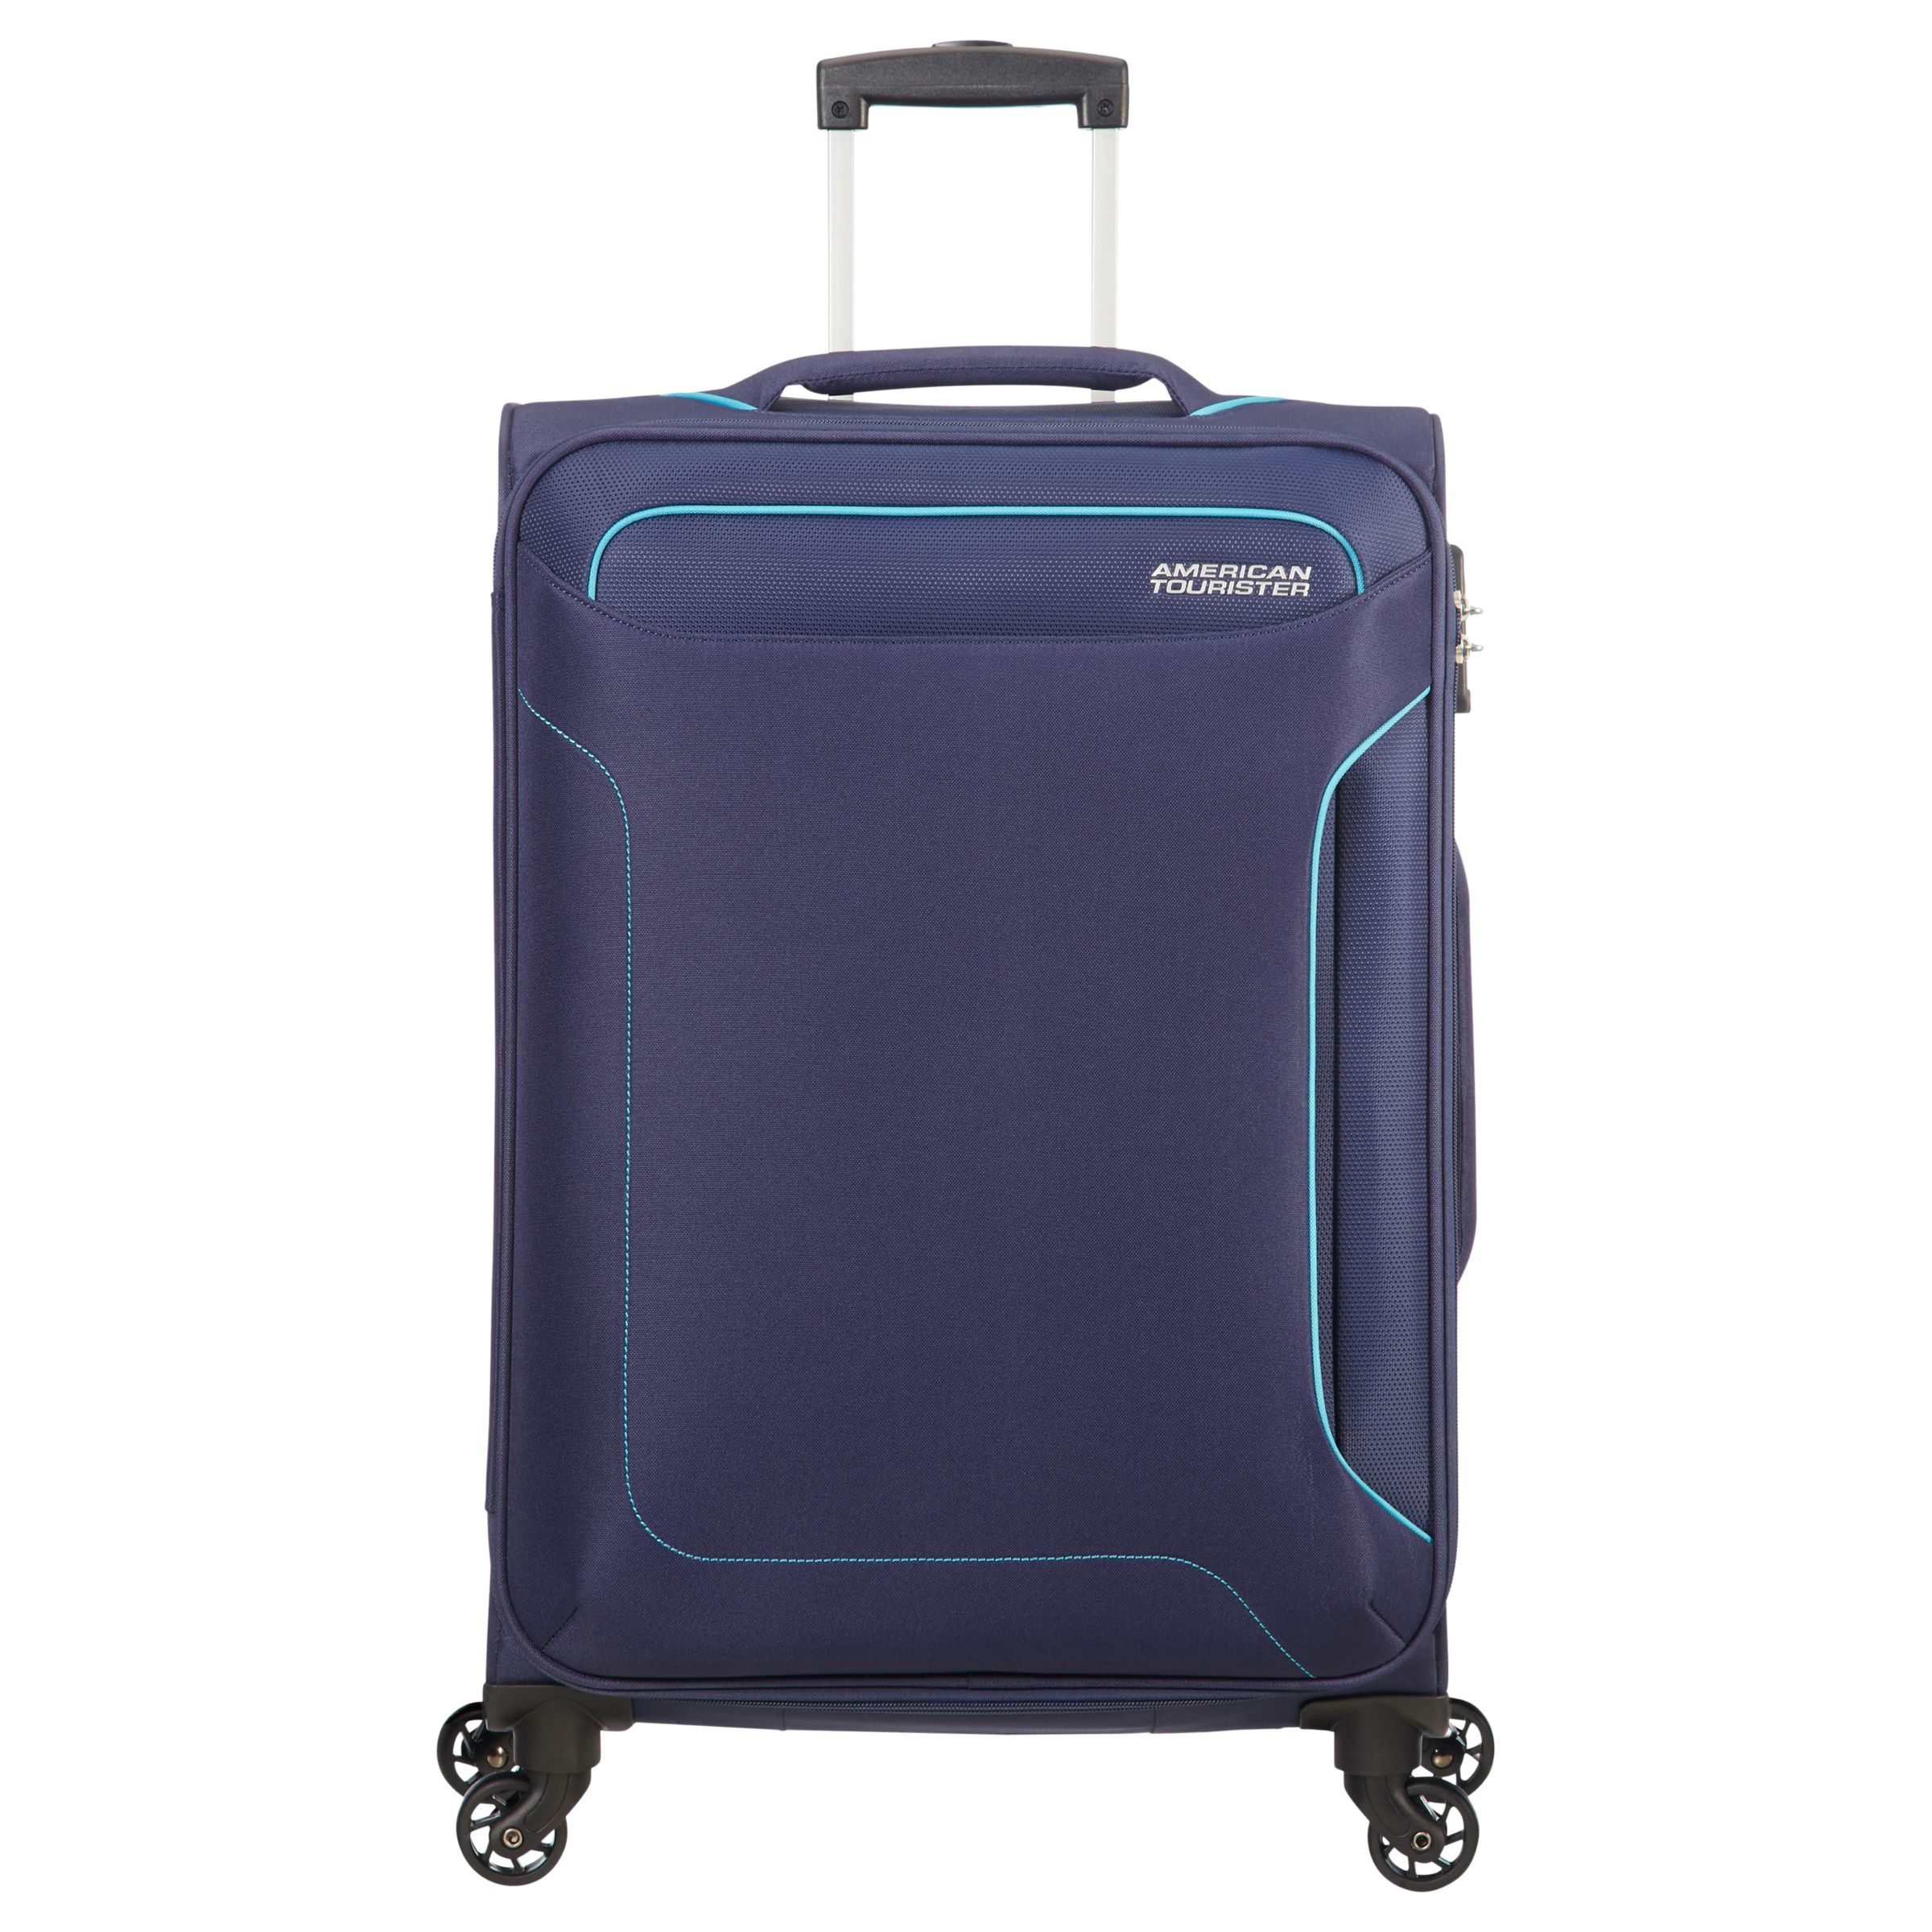 American Tourister American Tourister Holiday Heat 4-Spinner 67cm Medium Suitcase